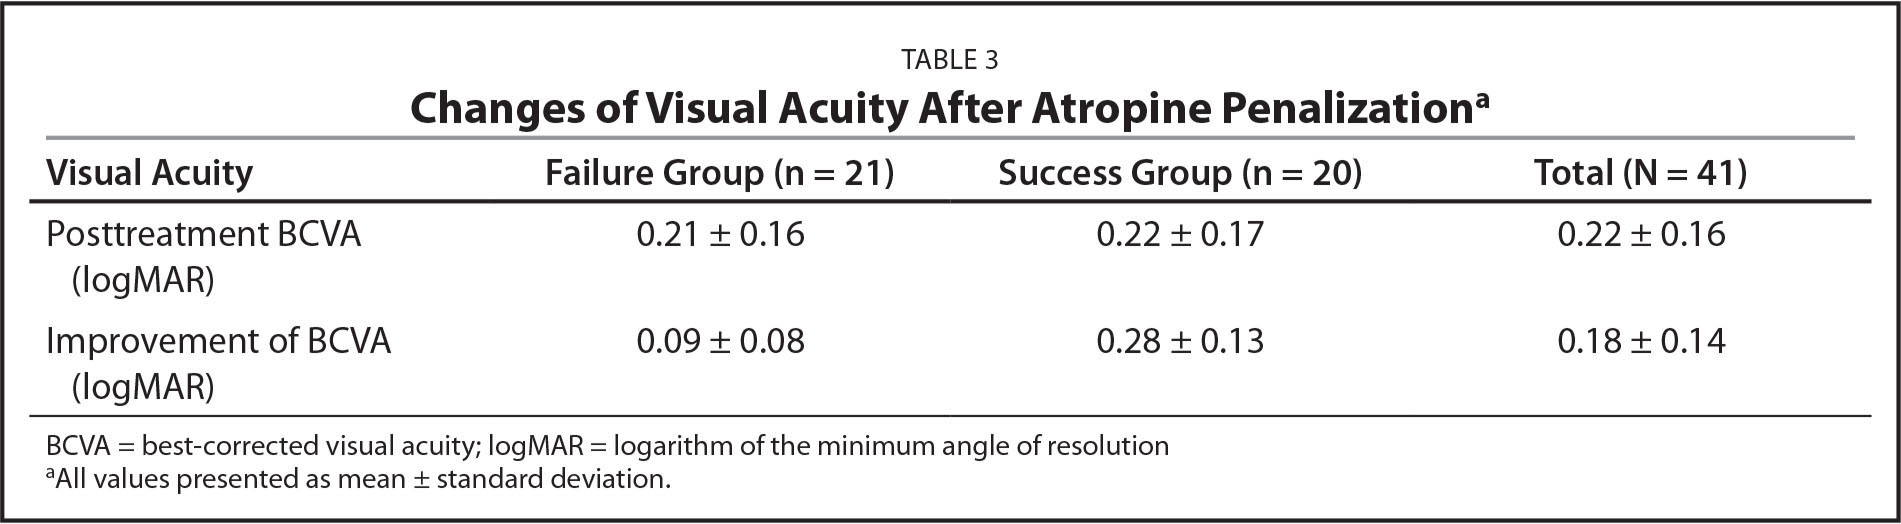 Changes of Visual Acuity After Atropine Penalizationa